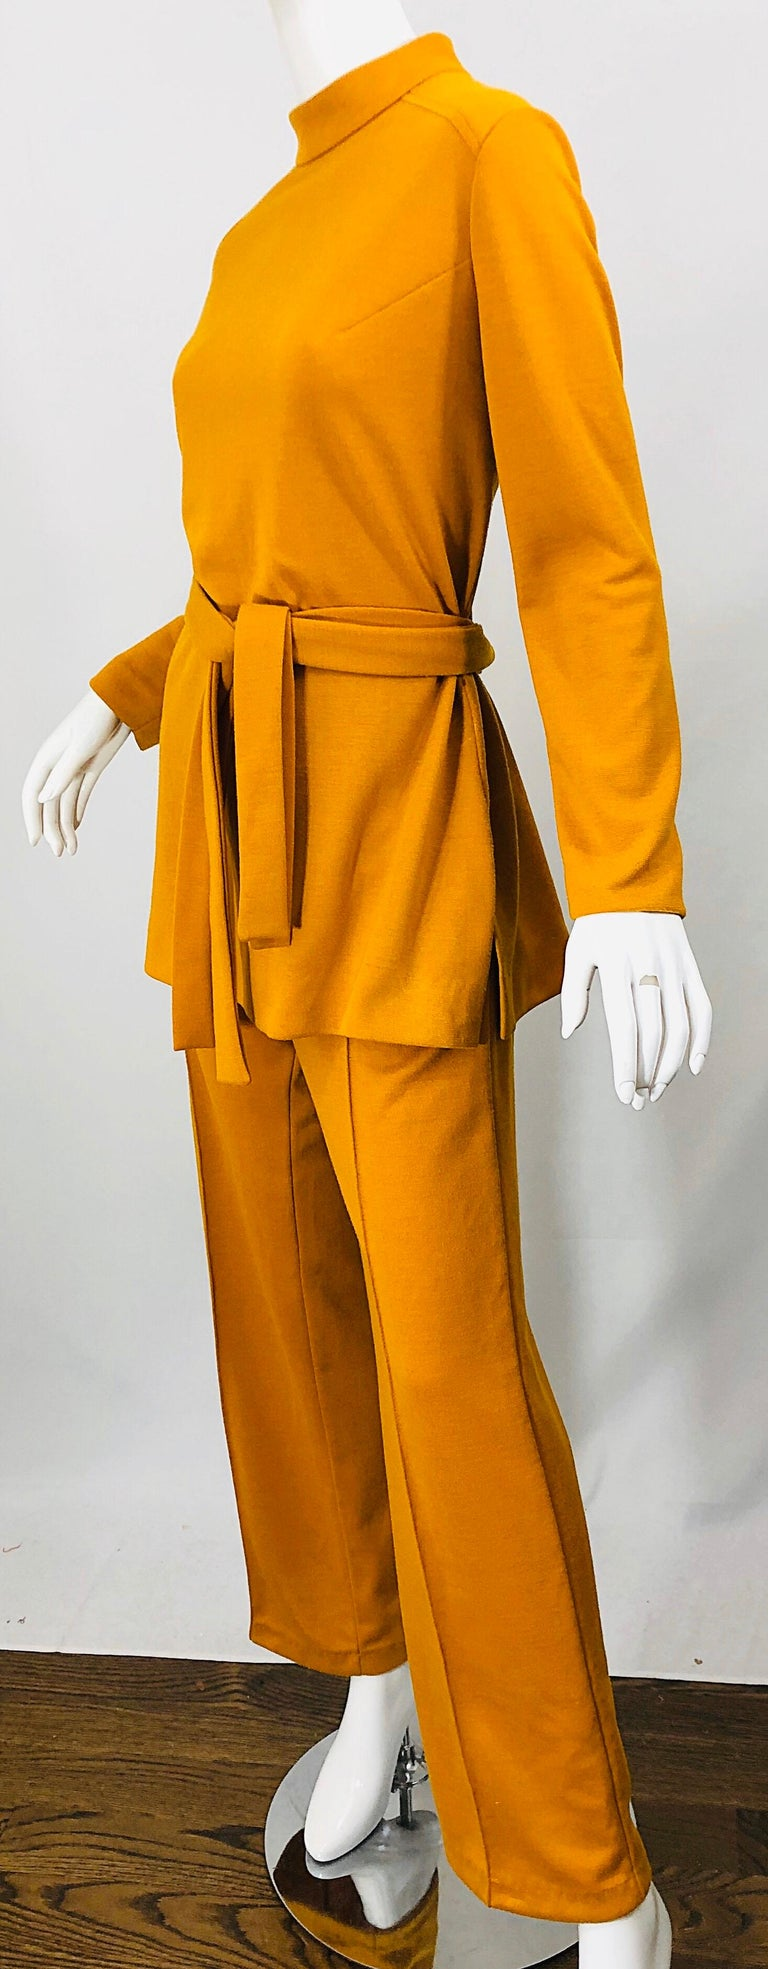 1970s Marigold Mustard Yellow Four Piece Vintage 70s Knit Shirt + Pants + Belt For Sale 9